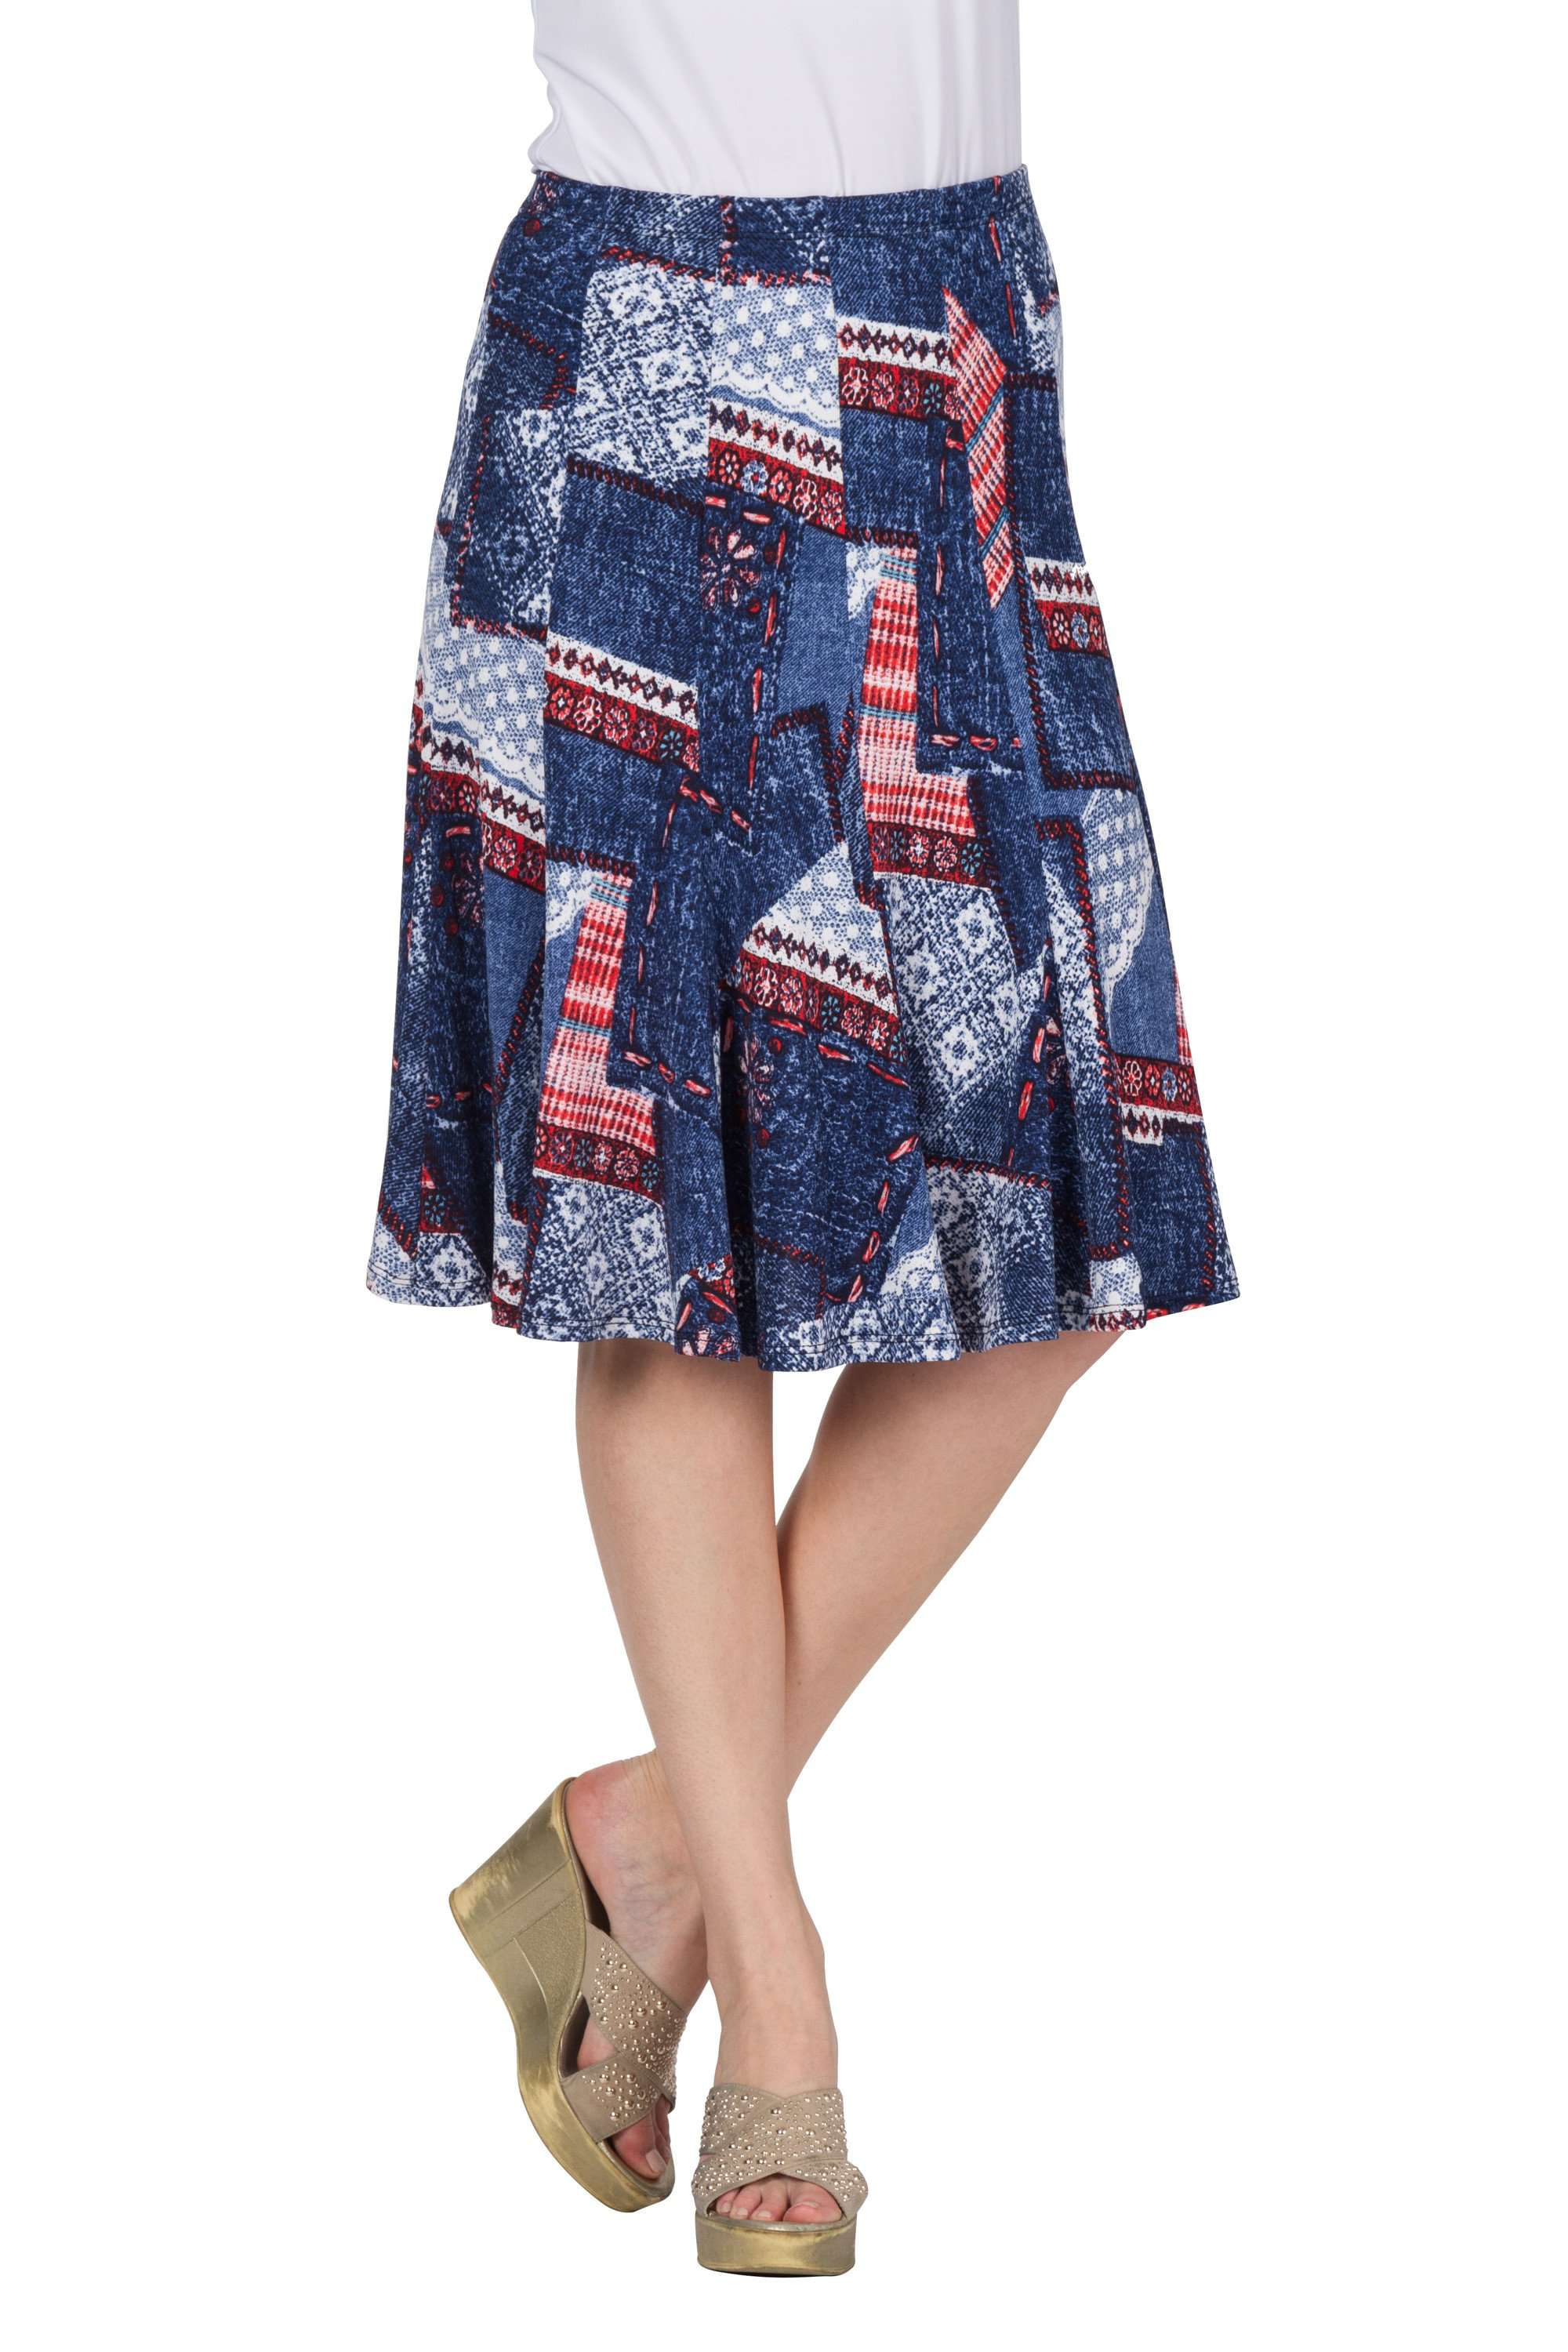 Skirt Denim Print Quality Knit Fabric Made in Canada - Yvonne Marie